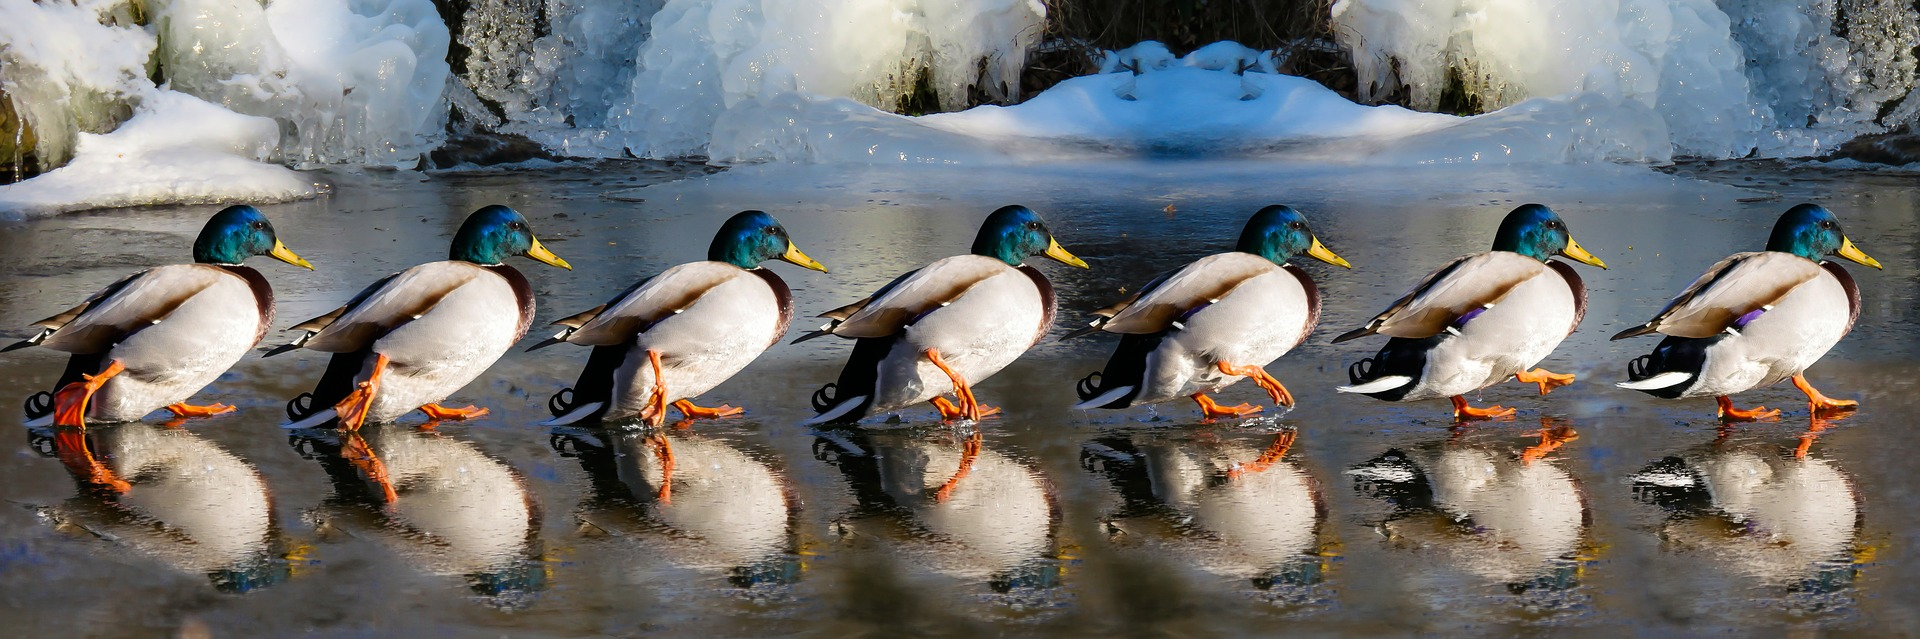 It's all about getting your ducks in a row!